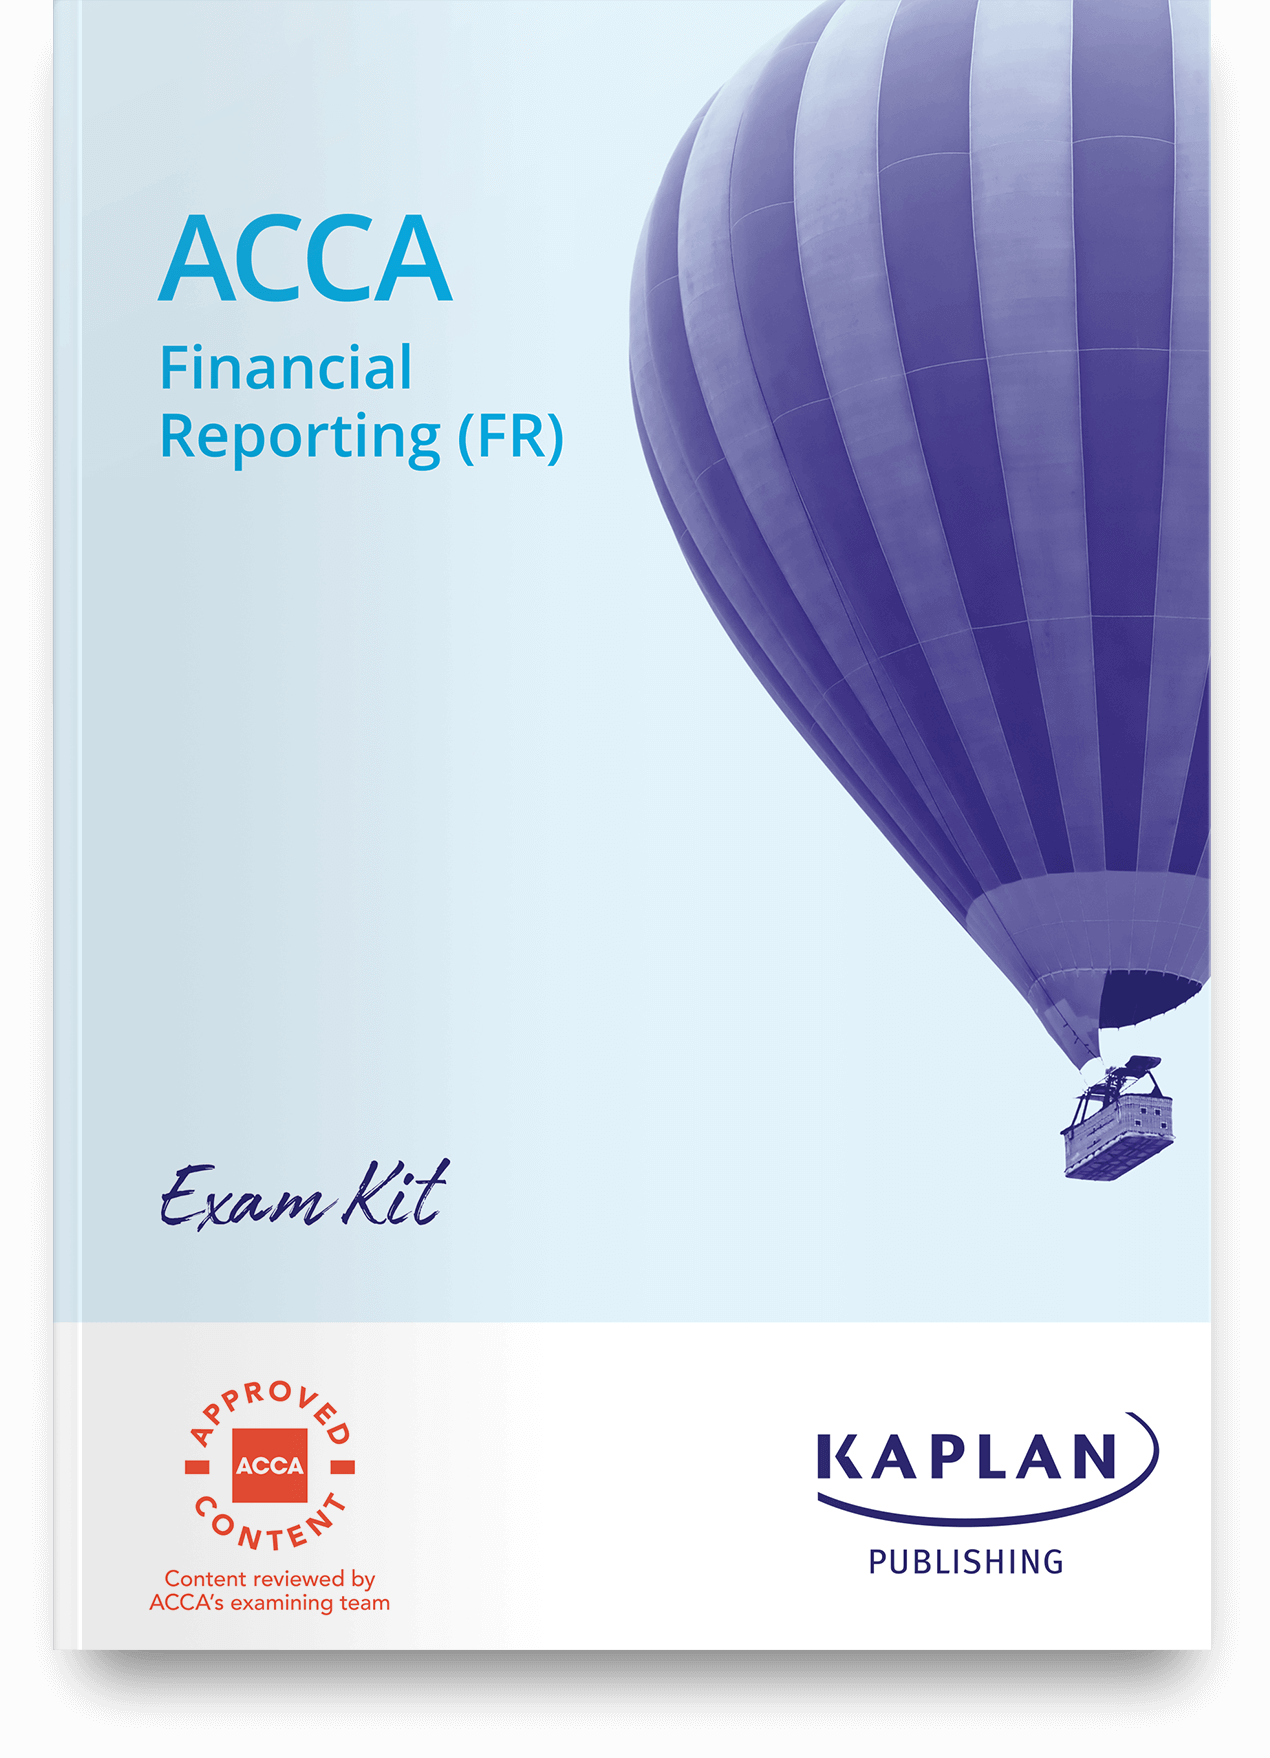 Mock Exam for ACCA Financial Reporting FR | Kaplan Publishing